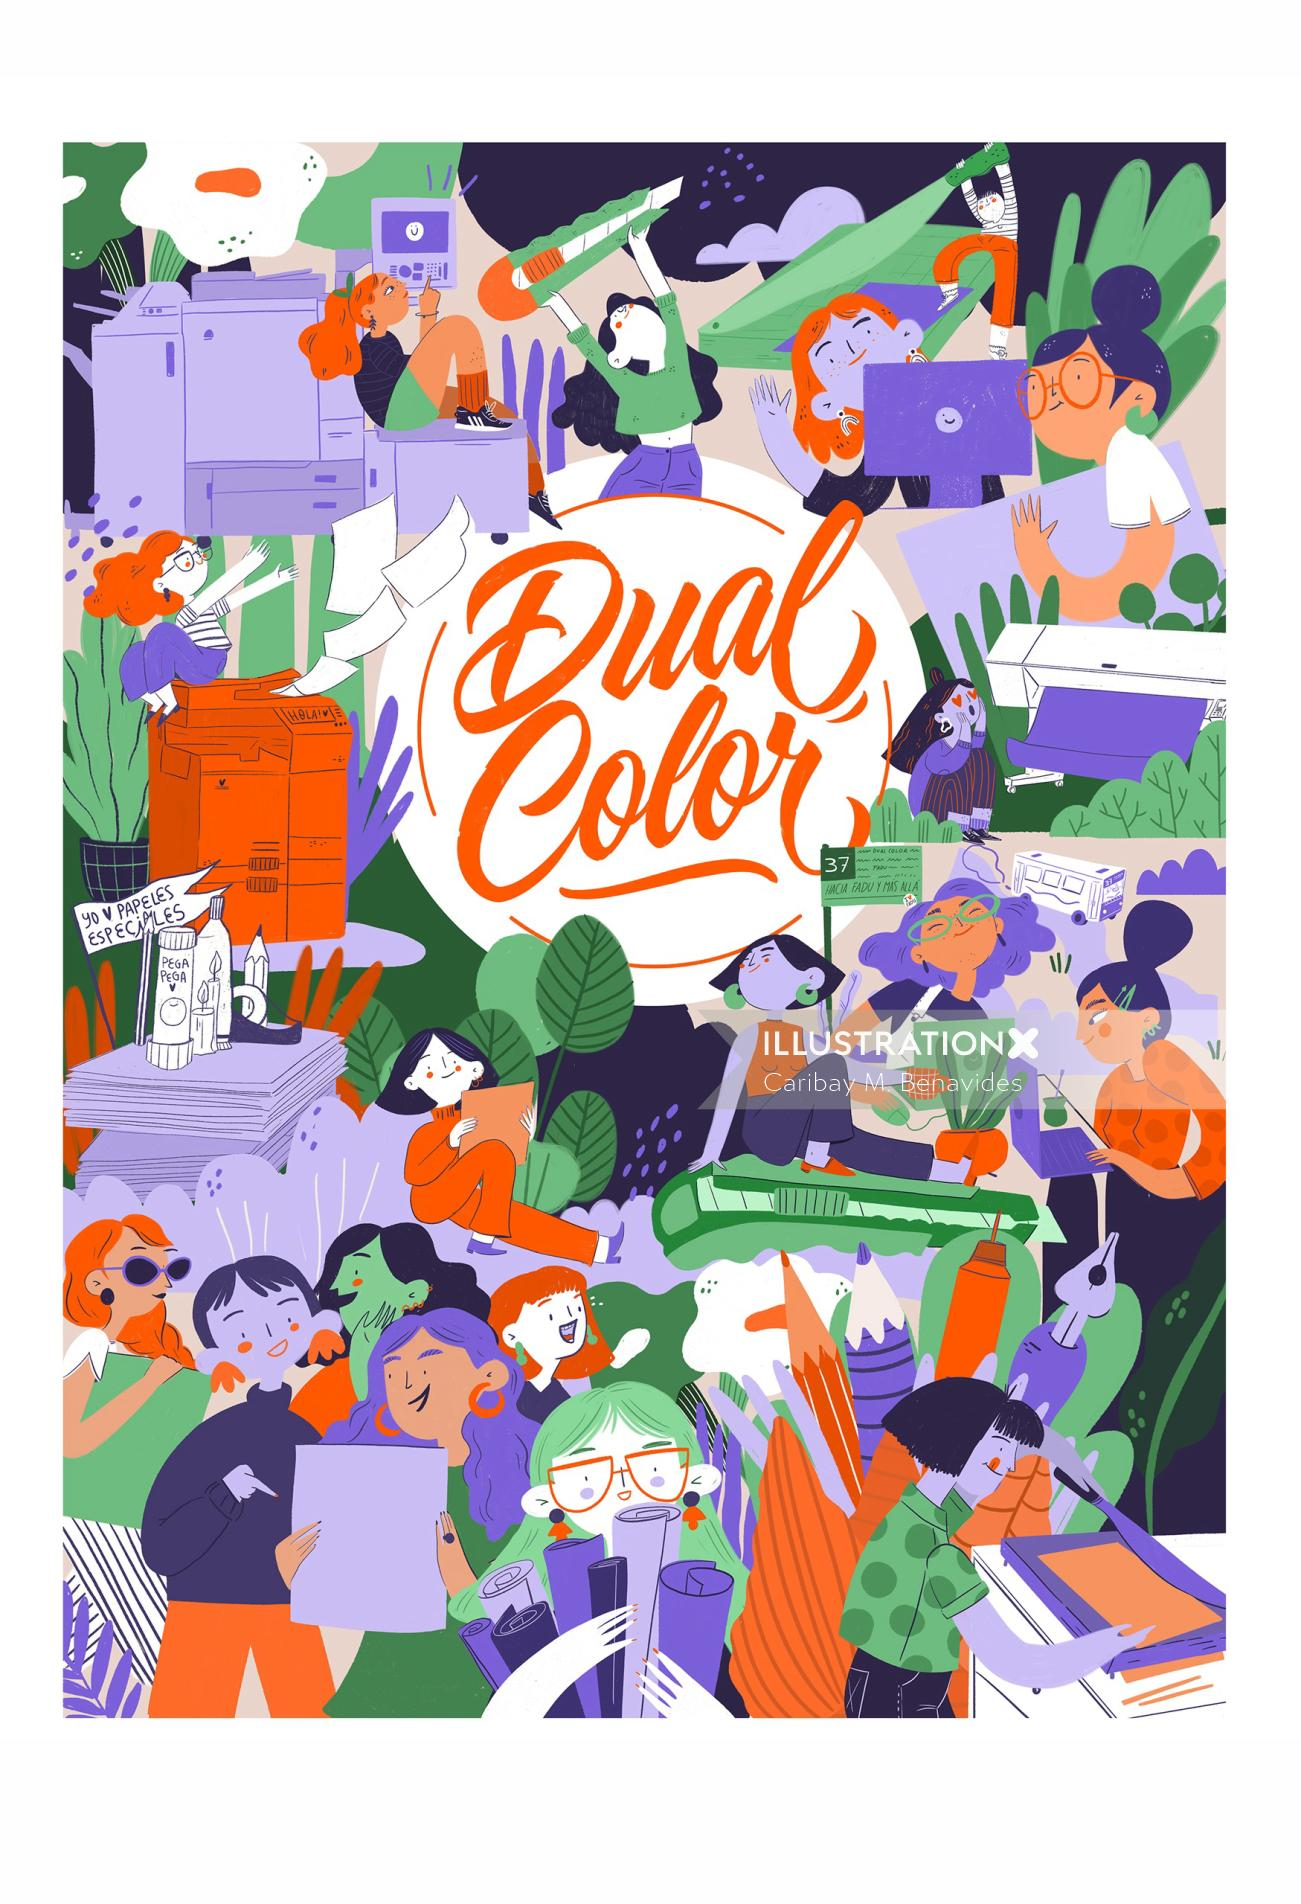 Dual Color is a printing shop in Buenos